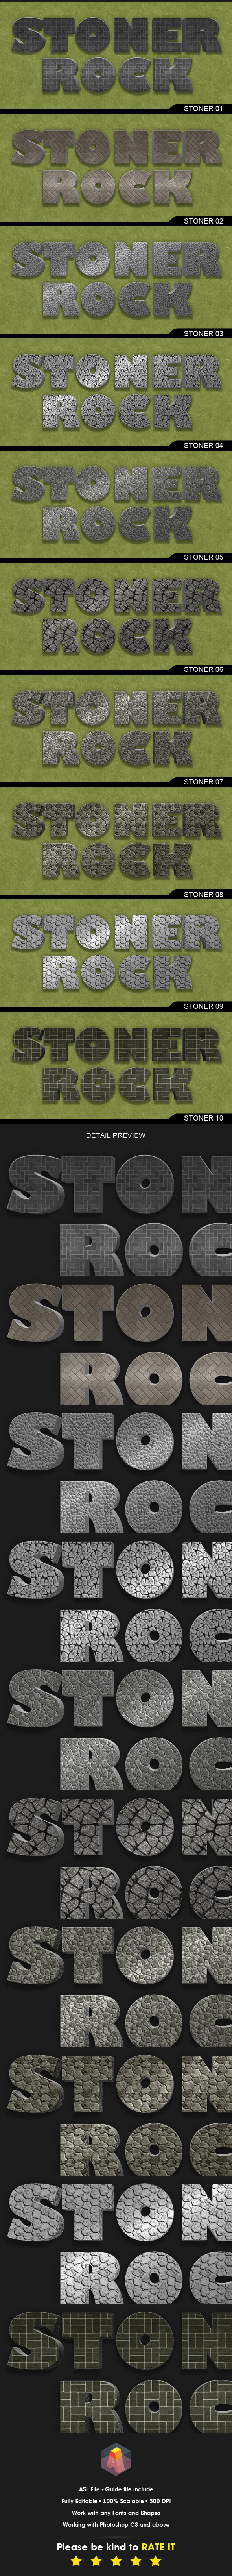 3D Layer Style Stone Effect for Photoshop - Text Effects Styles